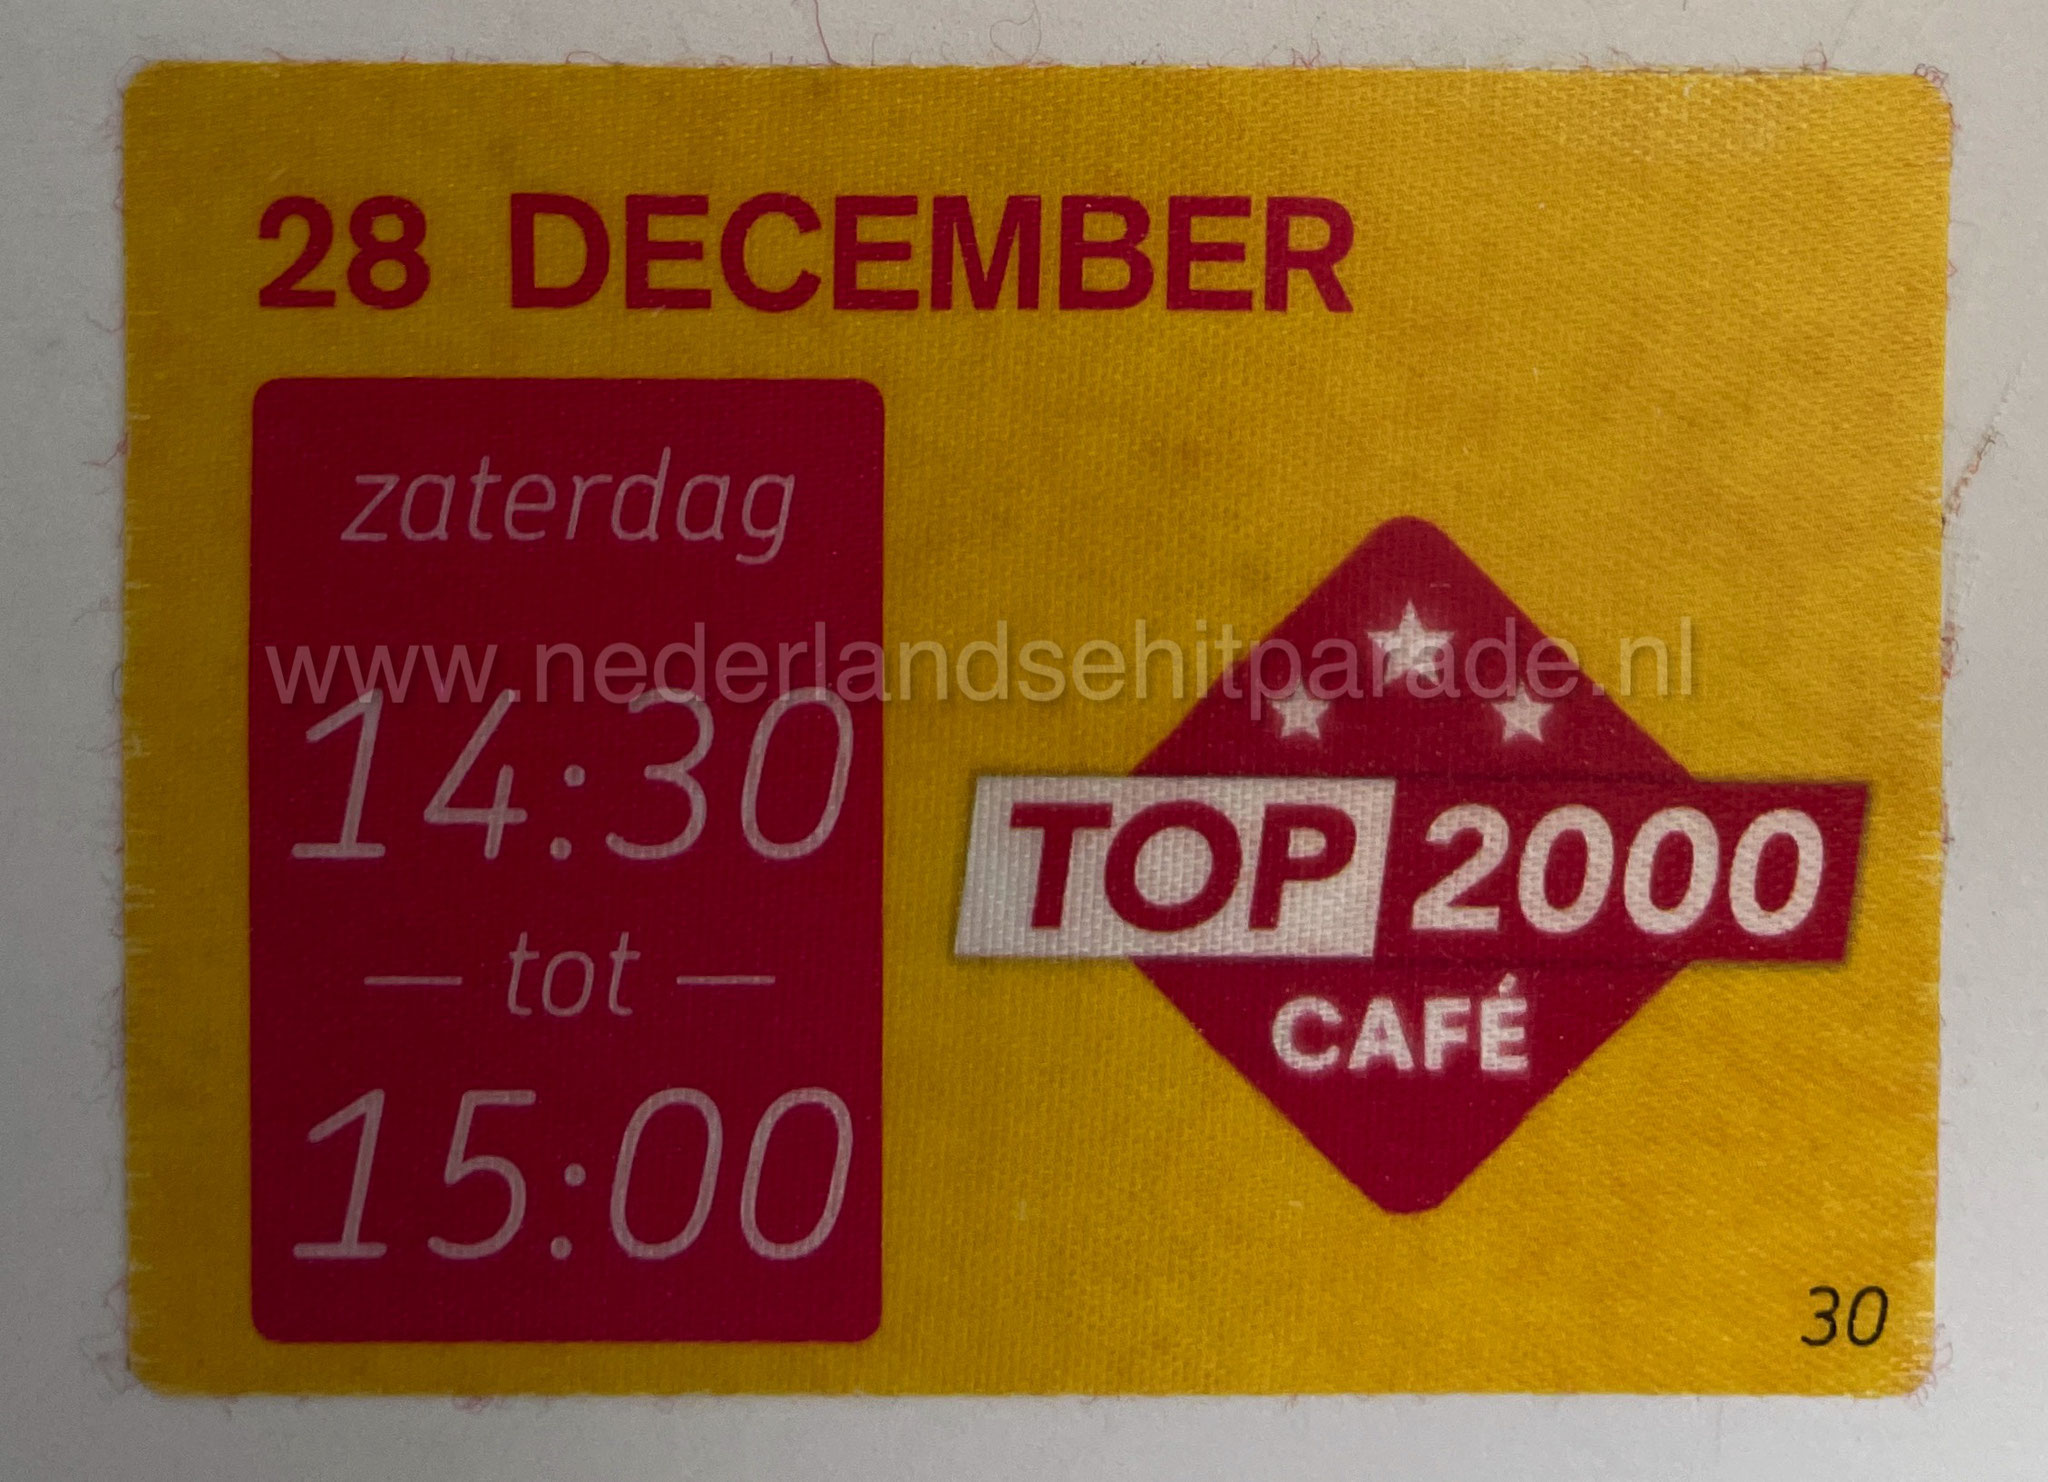 Top 2000 cafe toegang sticker